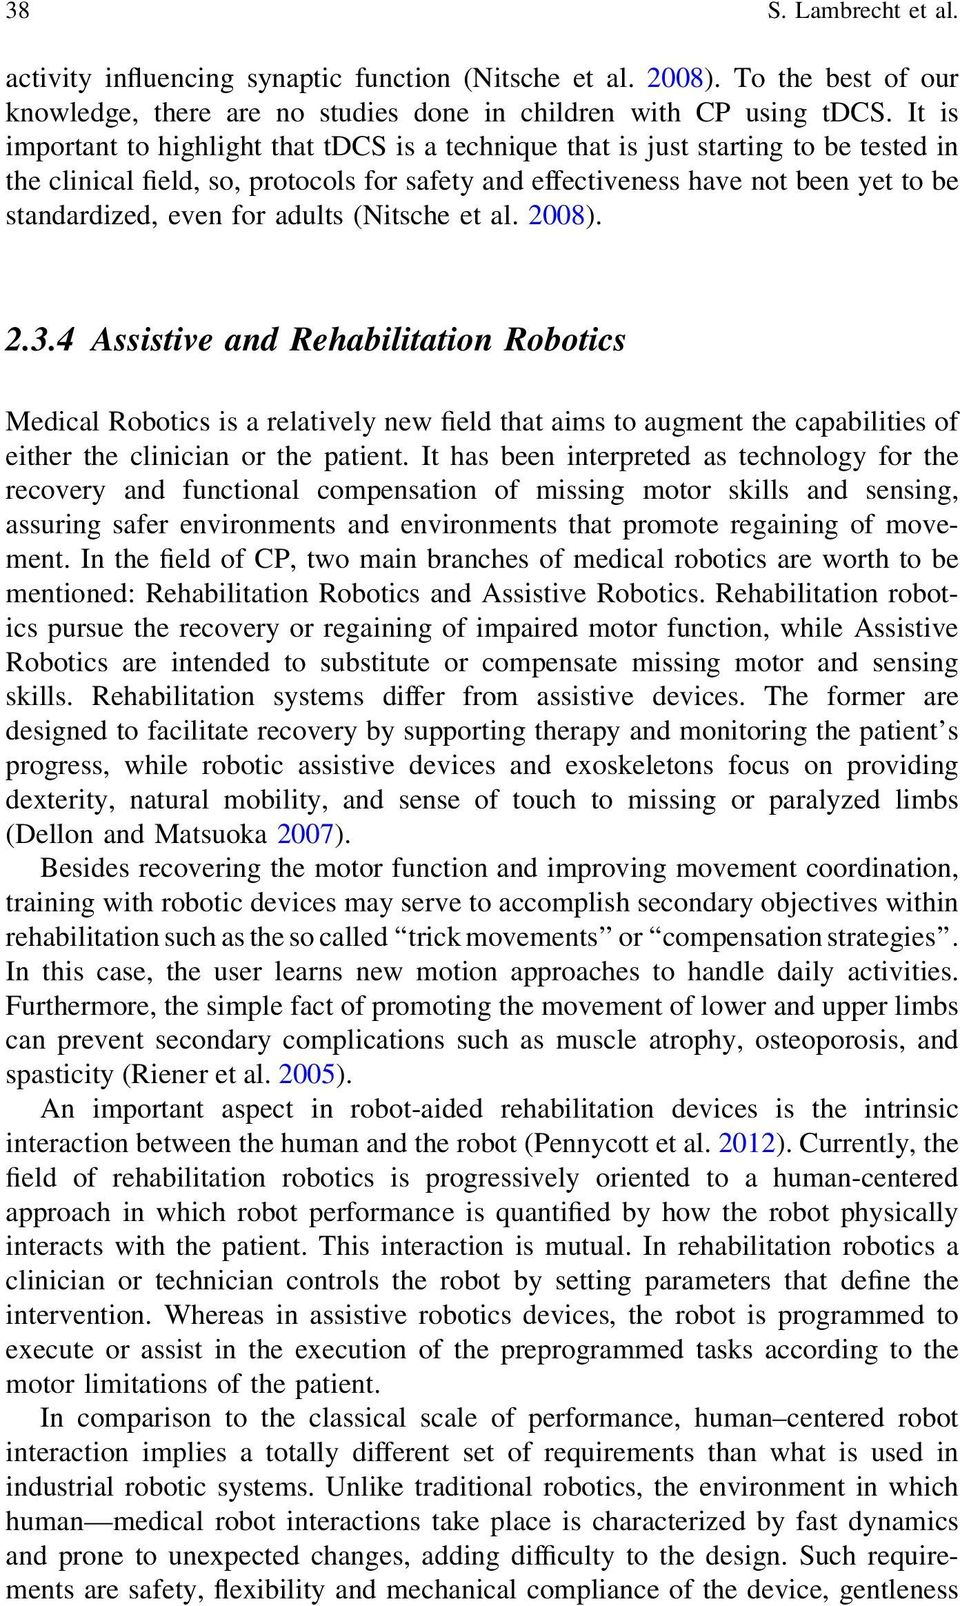 for adults (Nitsche et al. 2008). 2.3.4 Assistive and Rehabilitation Robotics Medical Robotics is a relatively new field that aims to augment the capabilities of either the clinician or the patient.